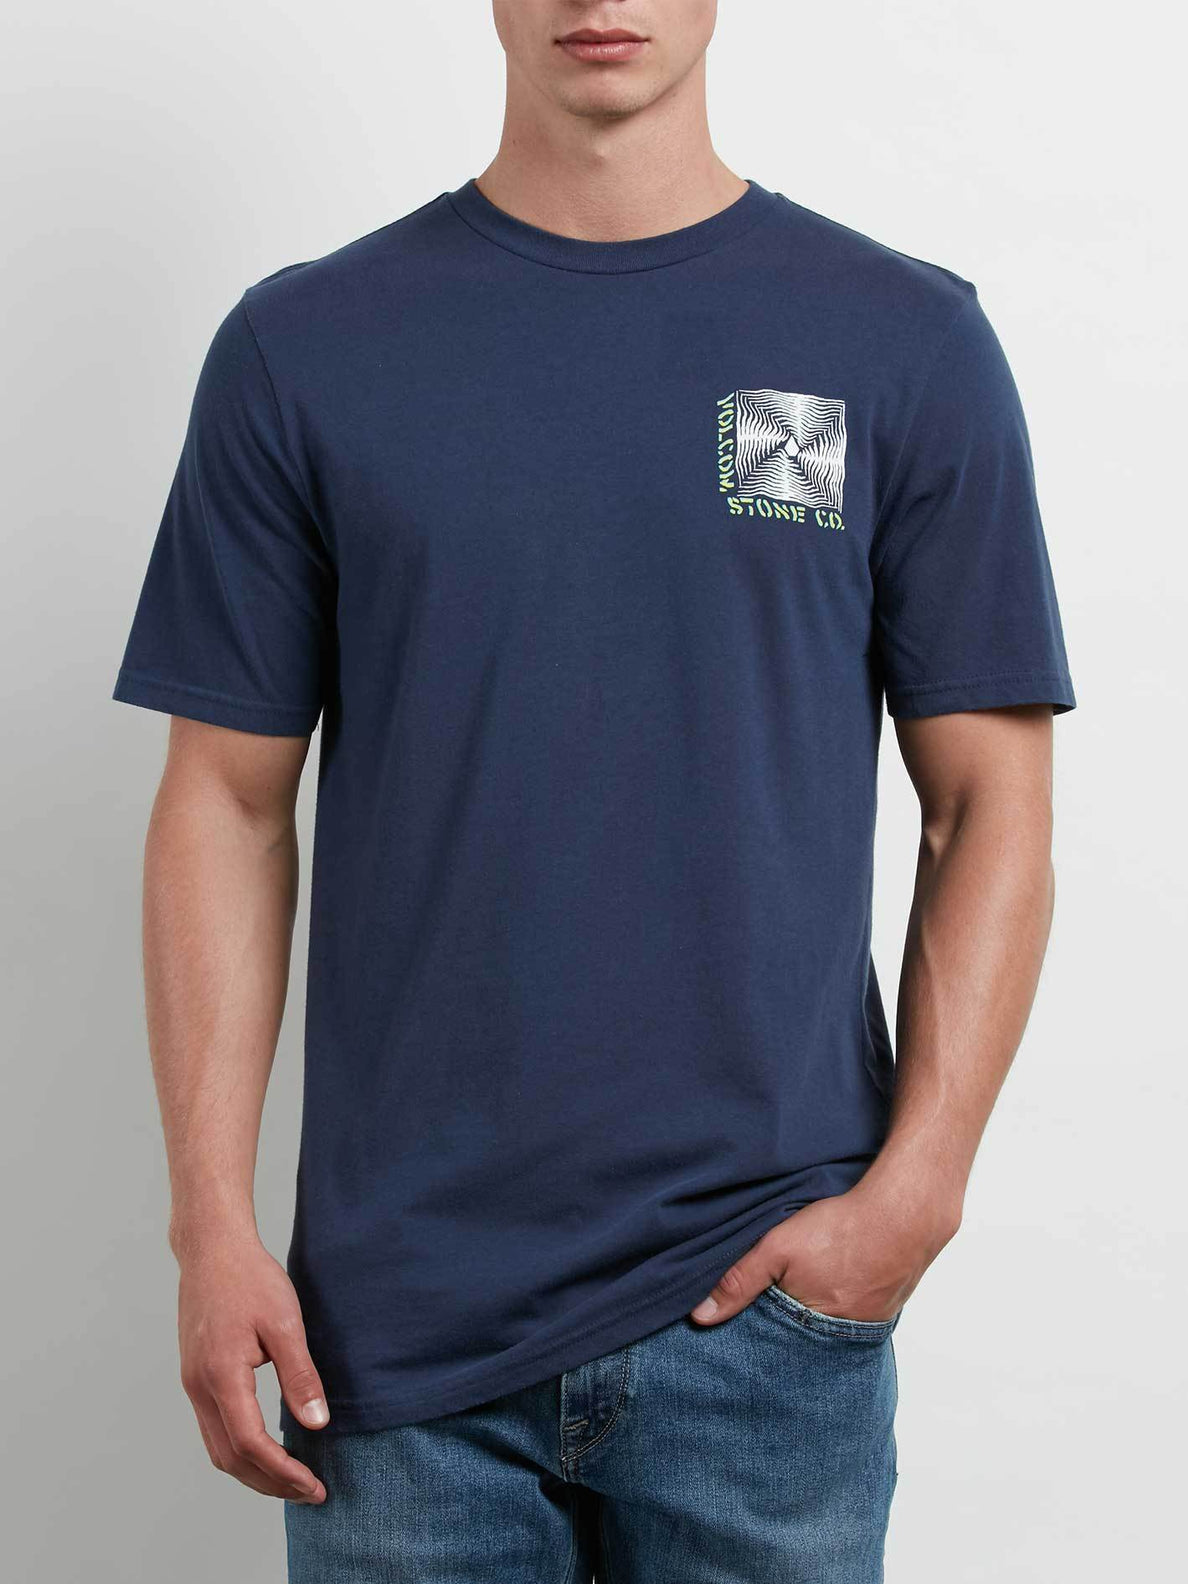 T-Shirt Stone Radiator - Navy